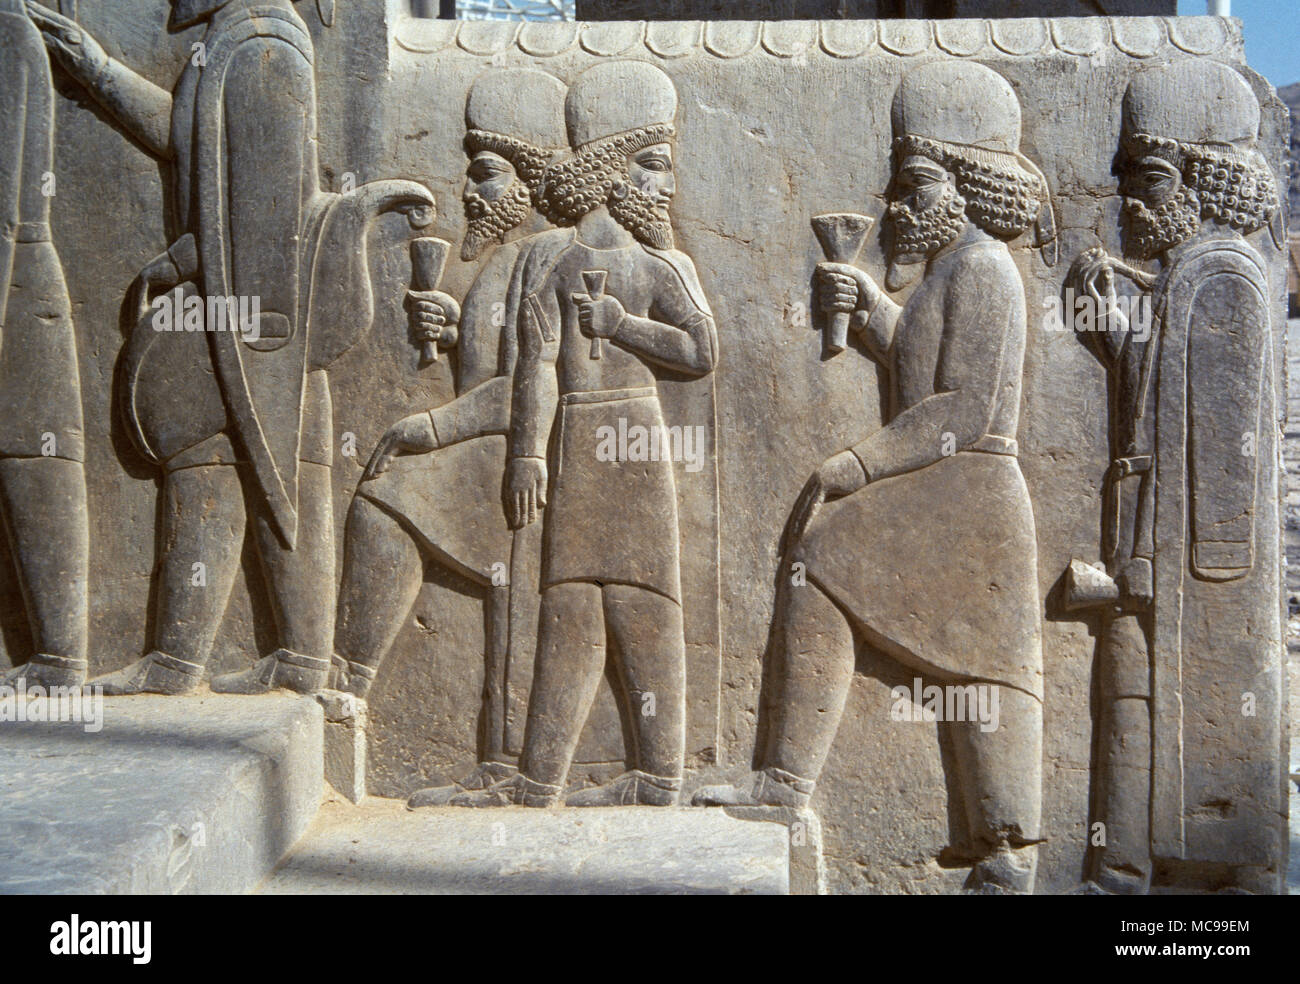 Achaemenid Empire Persepolis Palace Apadana The Tripylon Or The Central Palace The Audience Hall Of Darius Relief Of Dignitaries Addressing The Party Of Nowruz Celebration 5th Century Bc Xerxes I And Artaxerxes